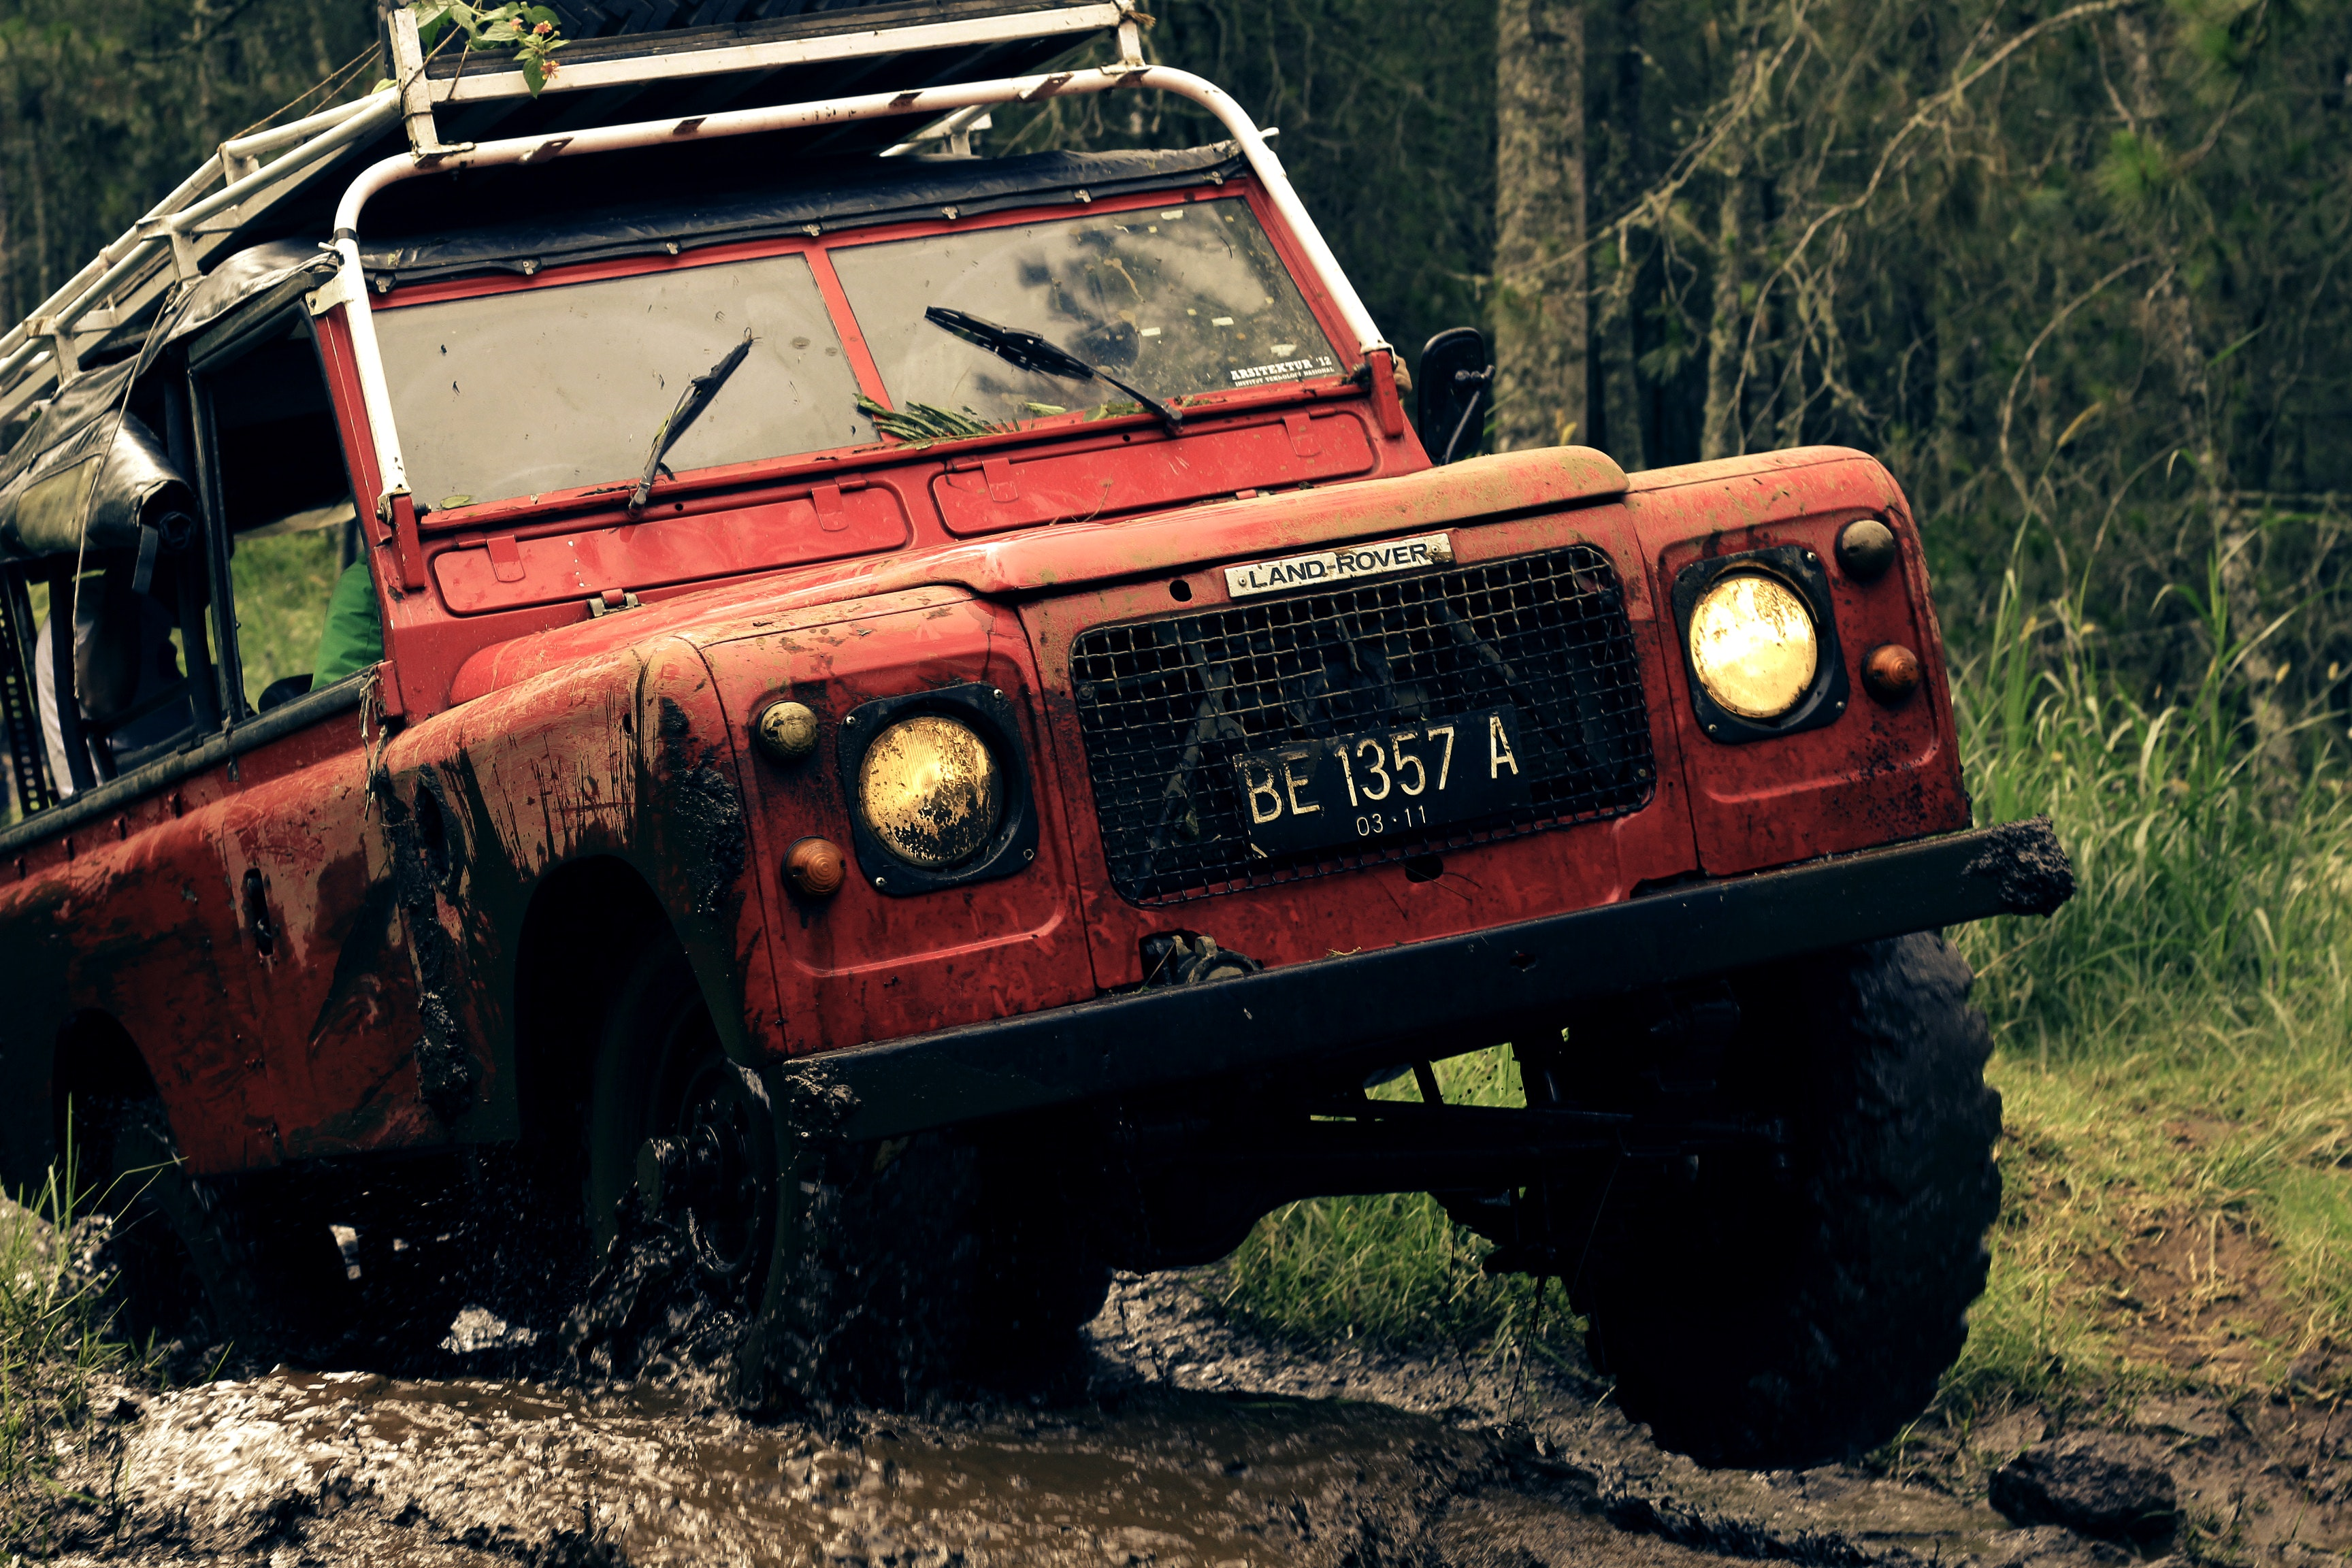 Brodos Adventure Club Offroad Training